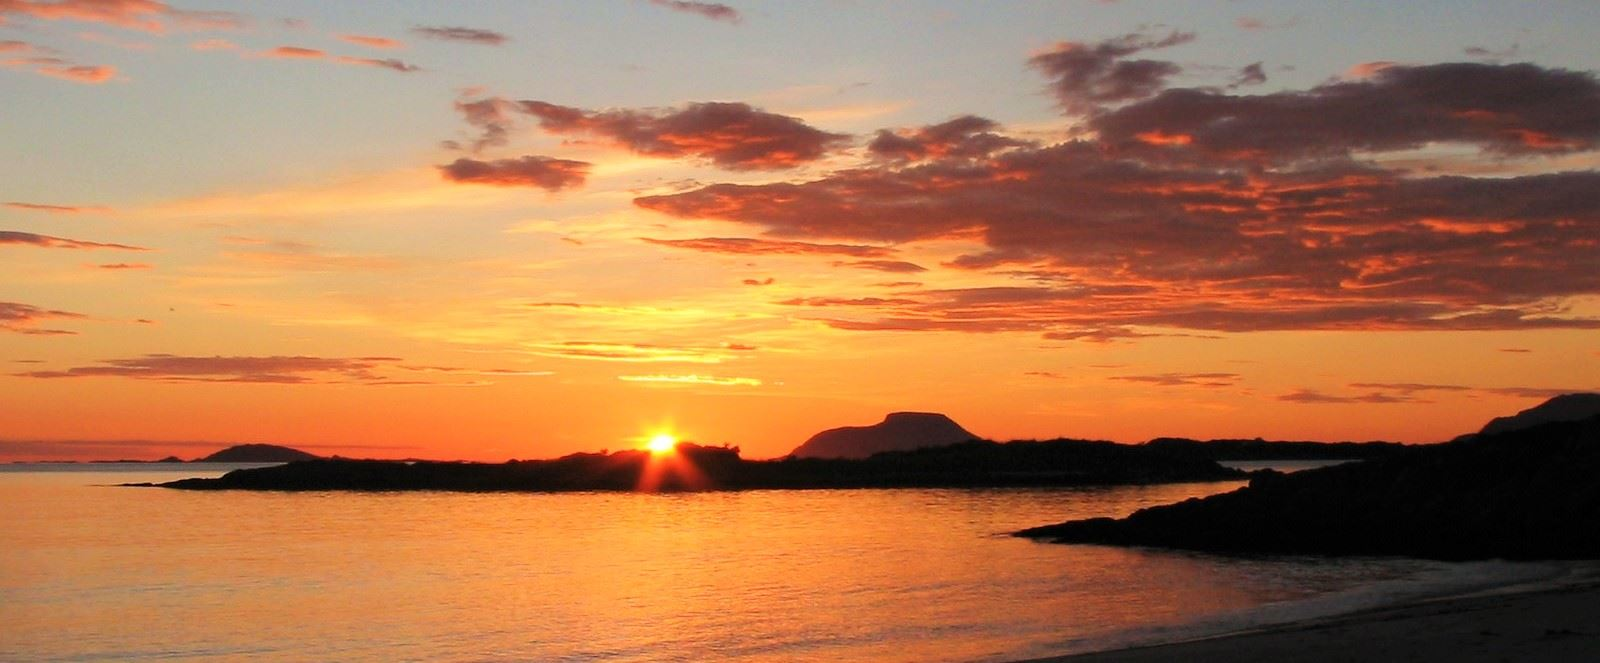 Experience the midnight sun in the arctic summer - Norfishinfo